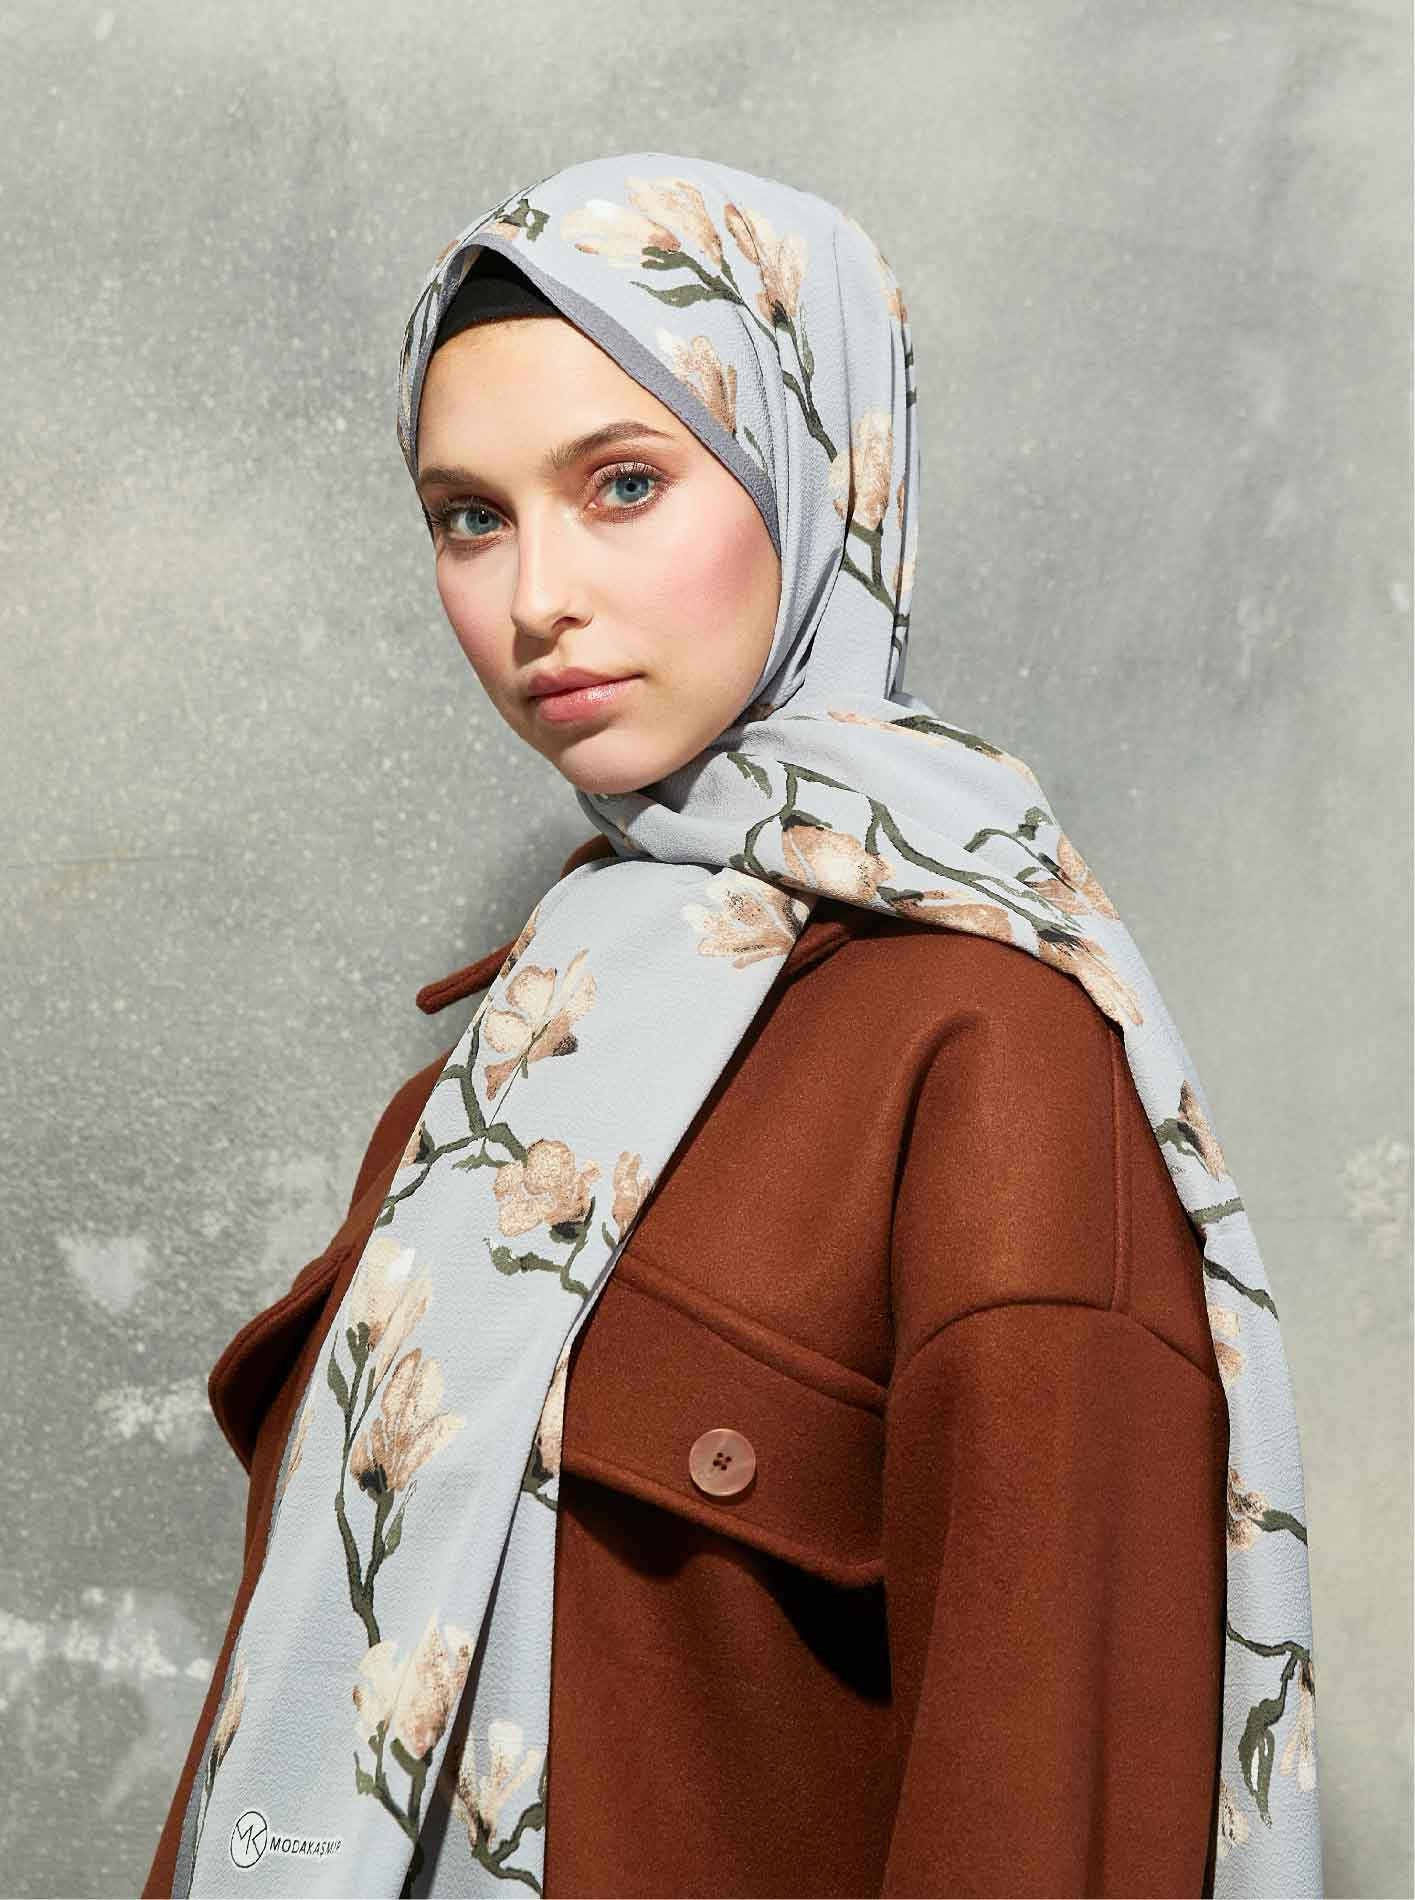 Flora Series Magnolia Branches Patterned Shawl Grey